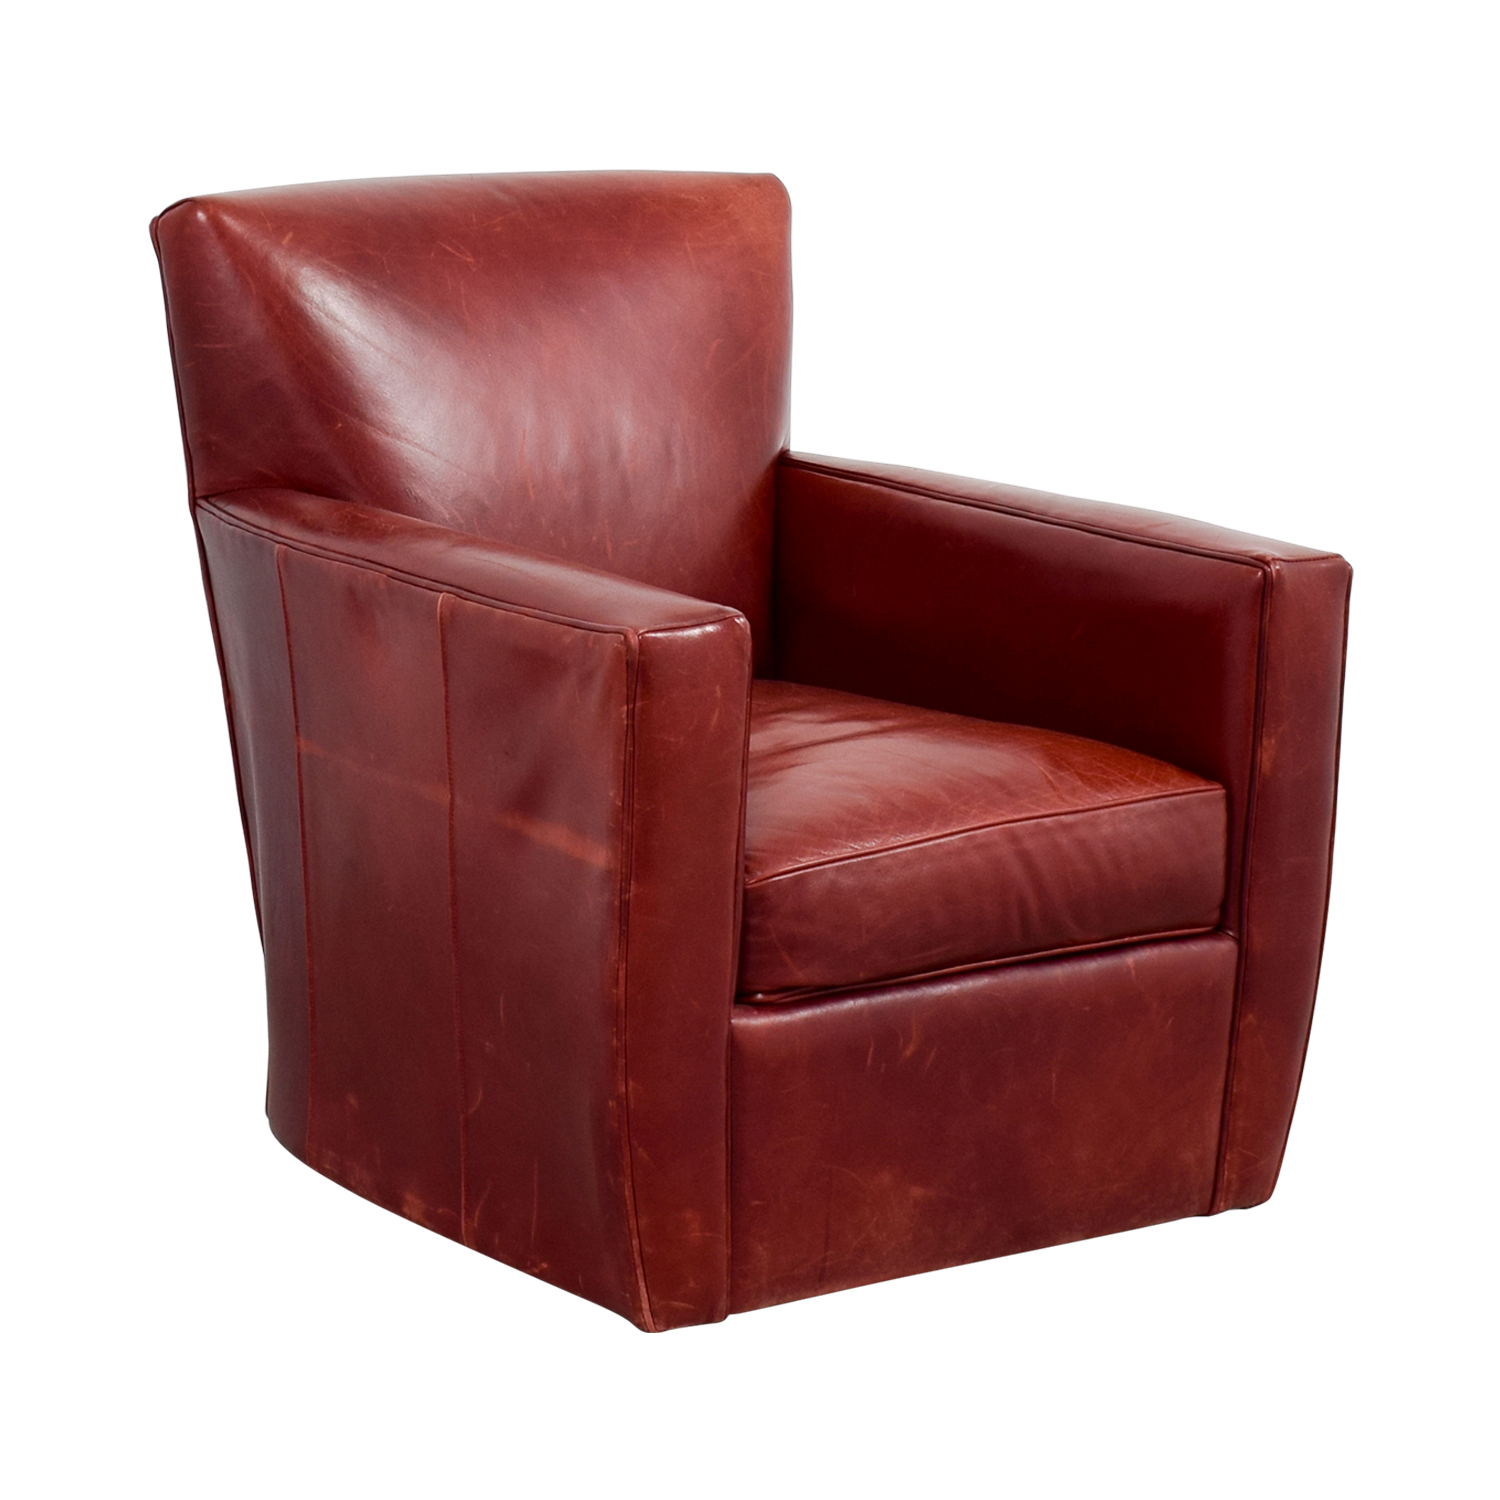 Pleasing 79 Off Crate Barrel Crate Barrel Leather Swivel Chair Chairs Uwap Interior Chair Design Uwaporg